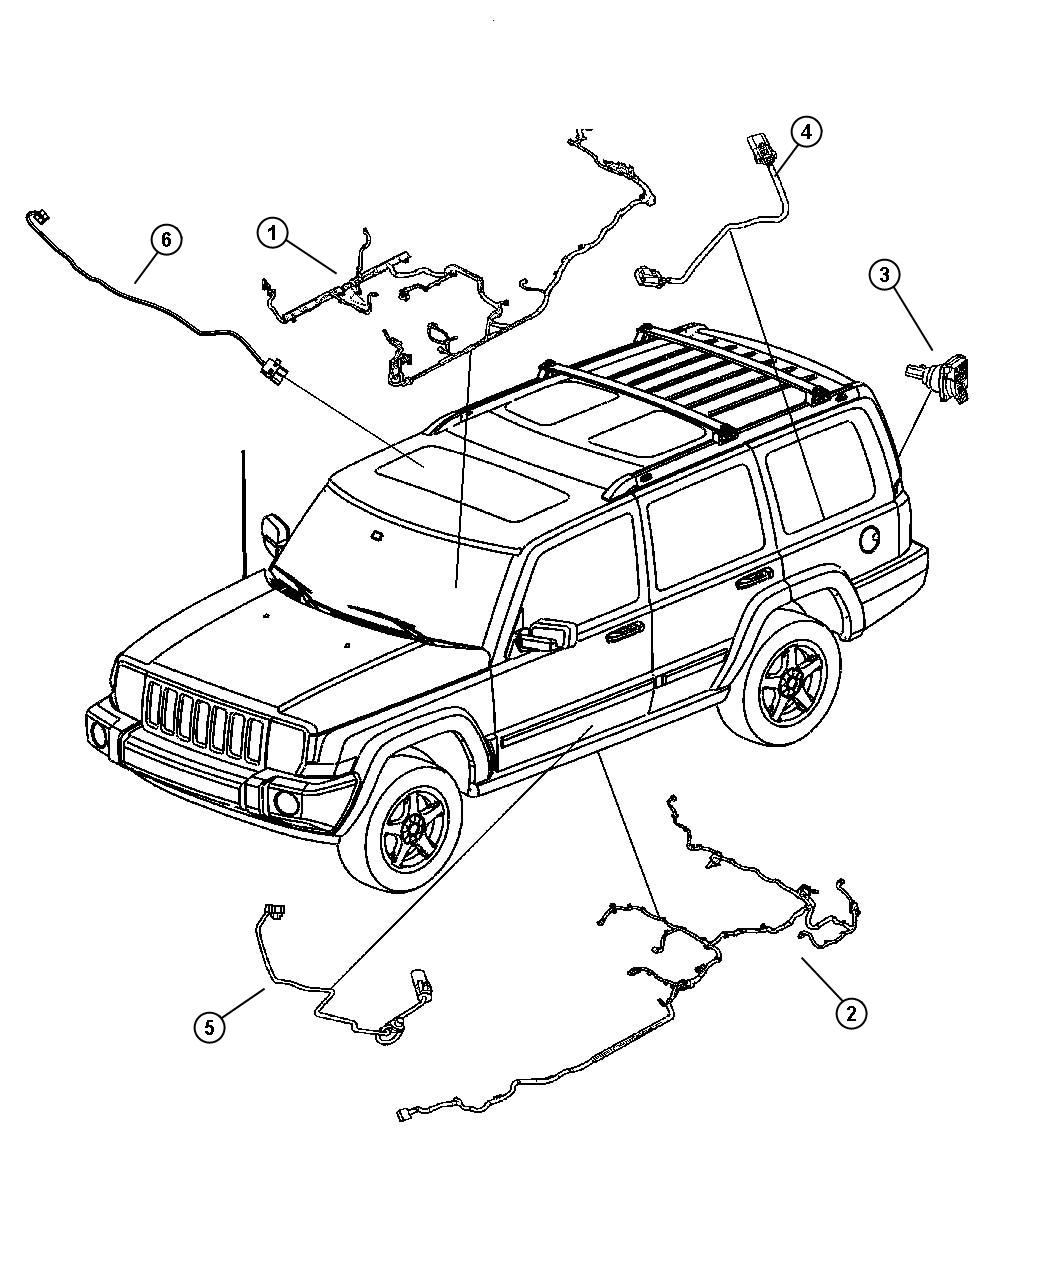 Jeep Commander Repair Manual